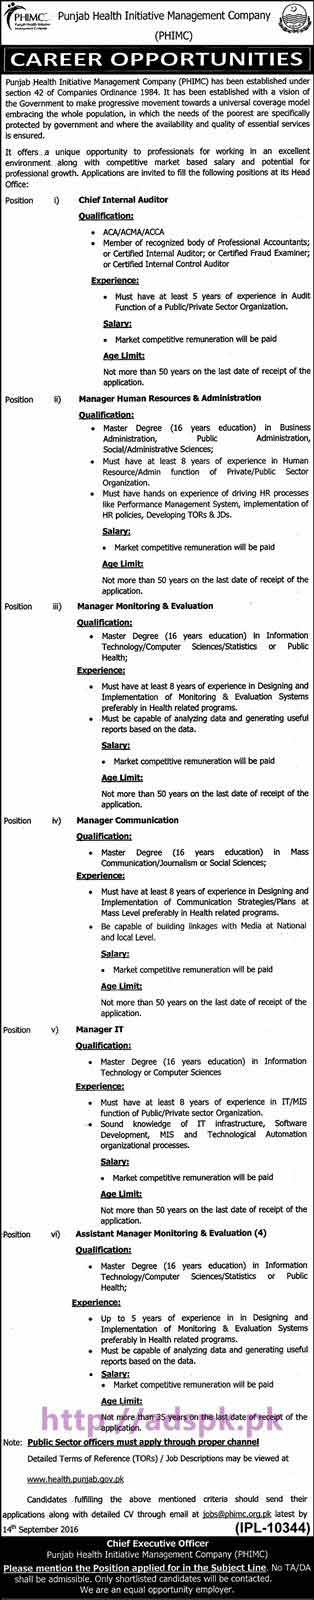 New Career Jobs Punjab Health Initiative Management Company Lahore Jobs Chief Internal Auditor Managers HR & Admin Communication M&E I.T Application Deadline 14-09-2016 Apply Now